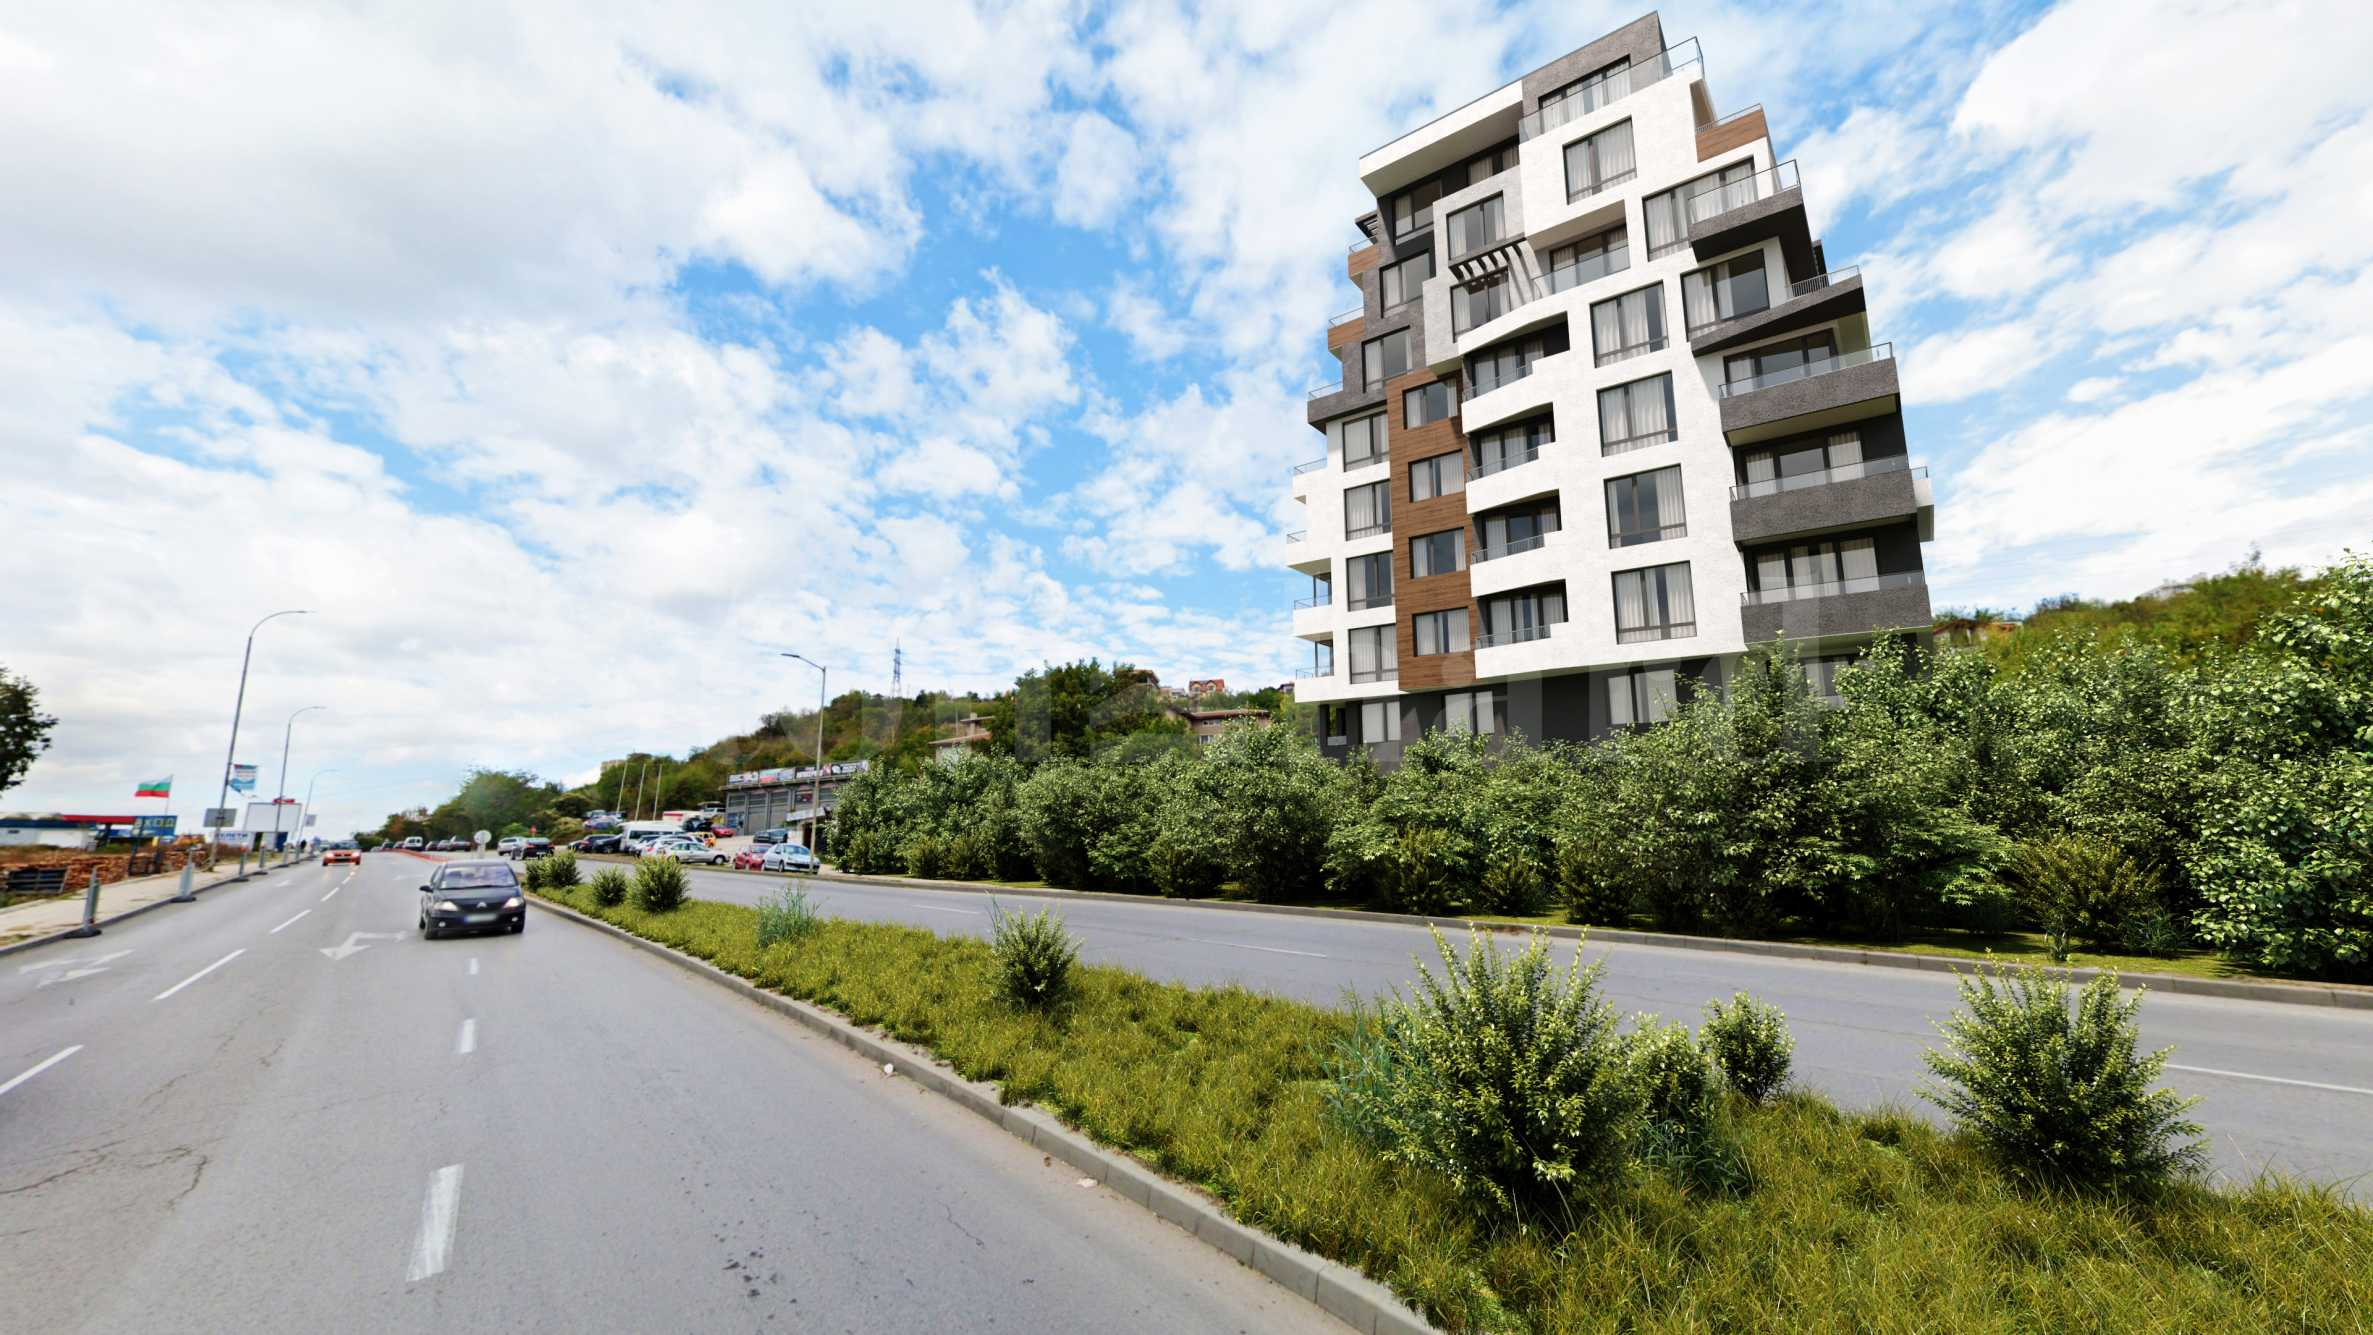 New-build apartments, garages and parking spaces in Pchelina area2 - Stonehard